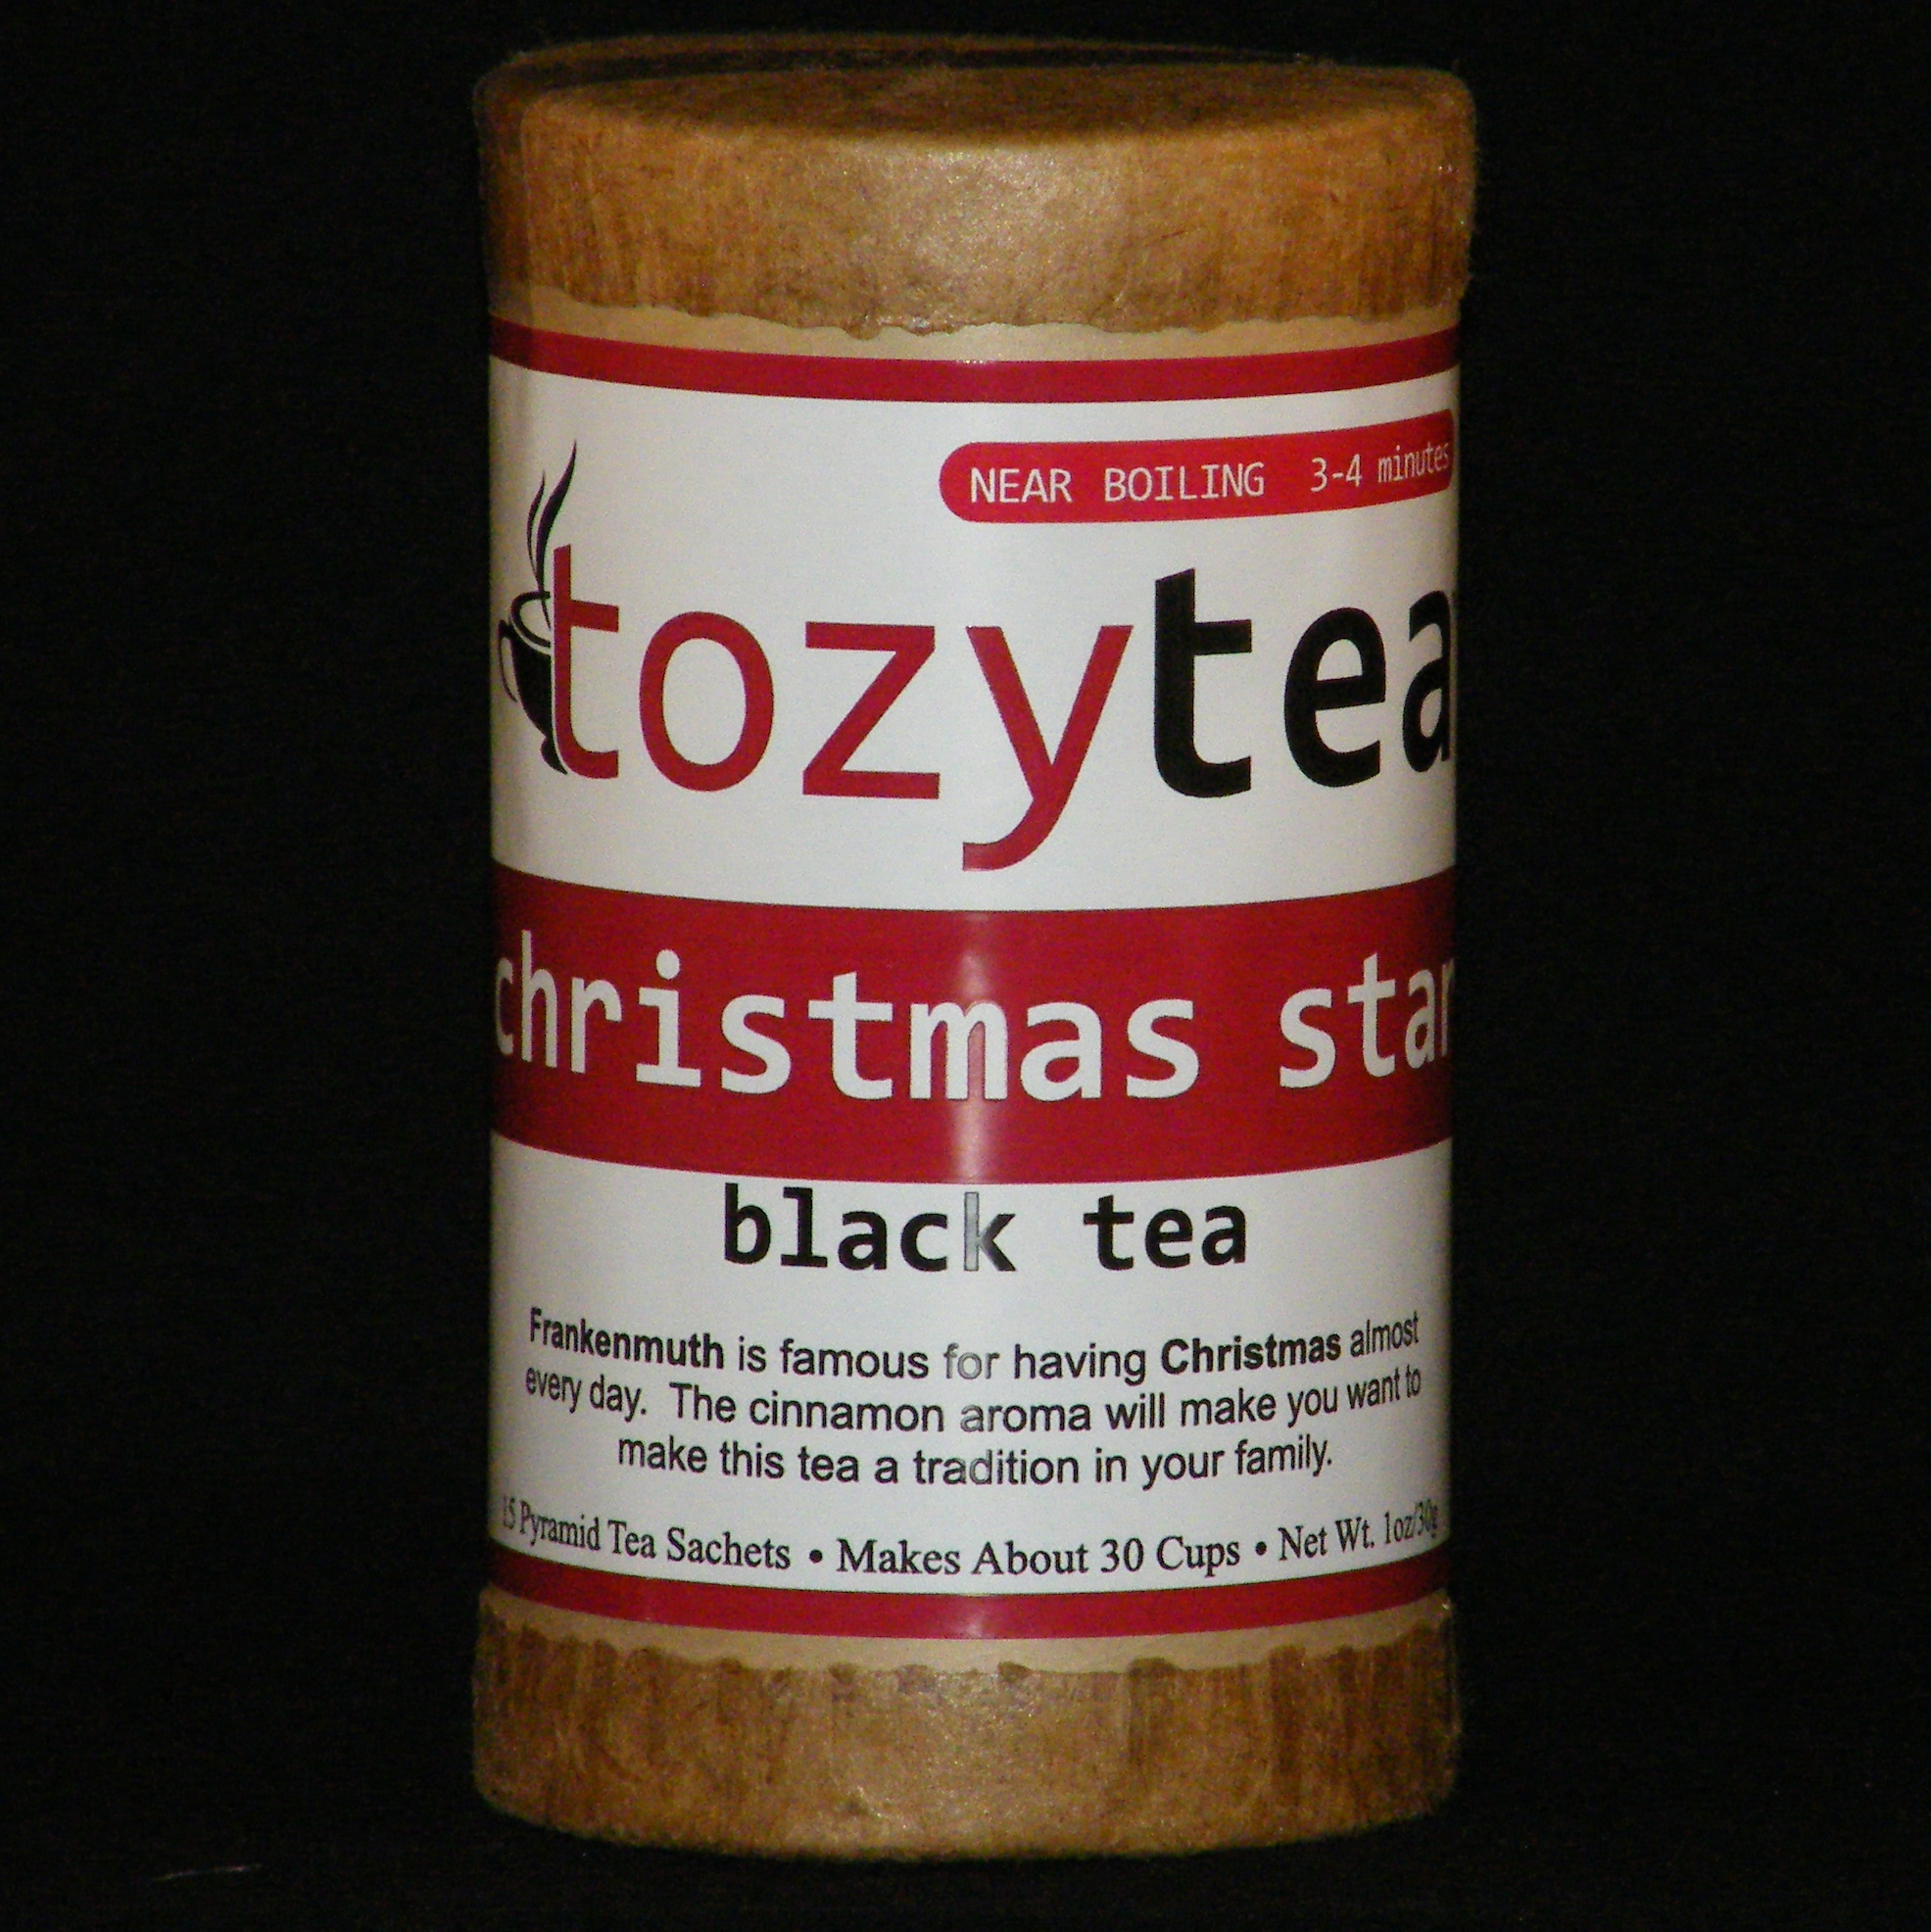 Christmas Star frankenmuth, christmas, star, black, tea, cinnamon